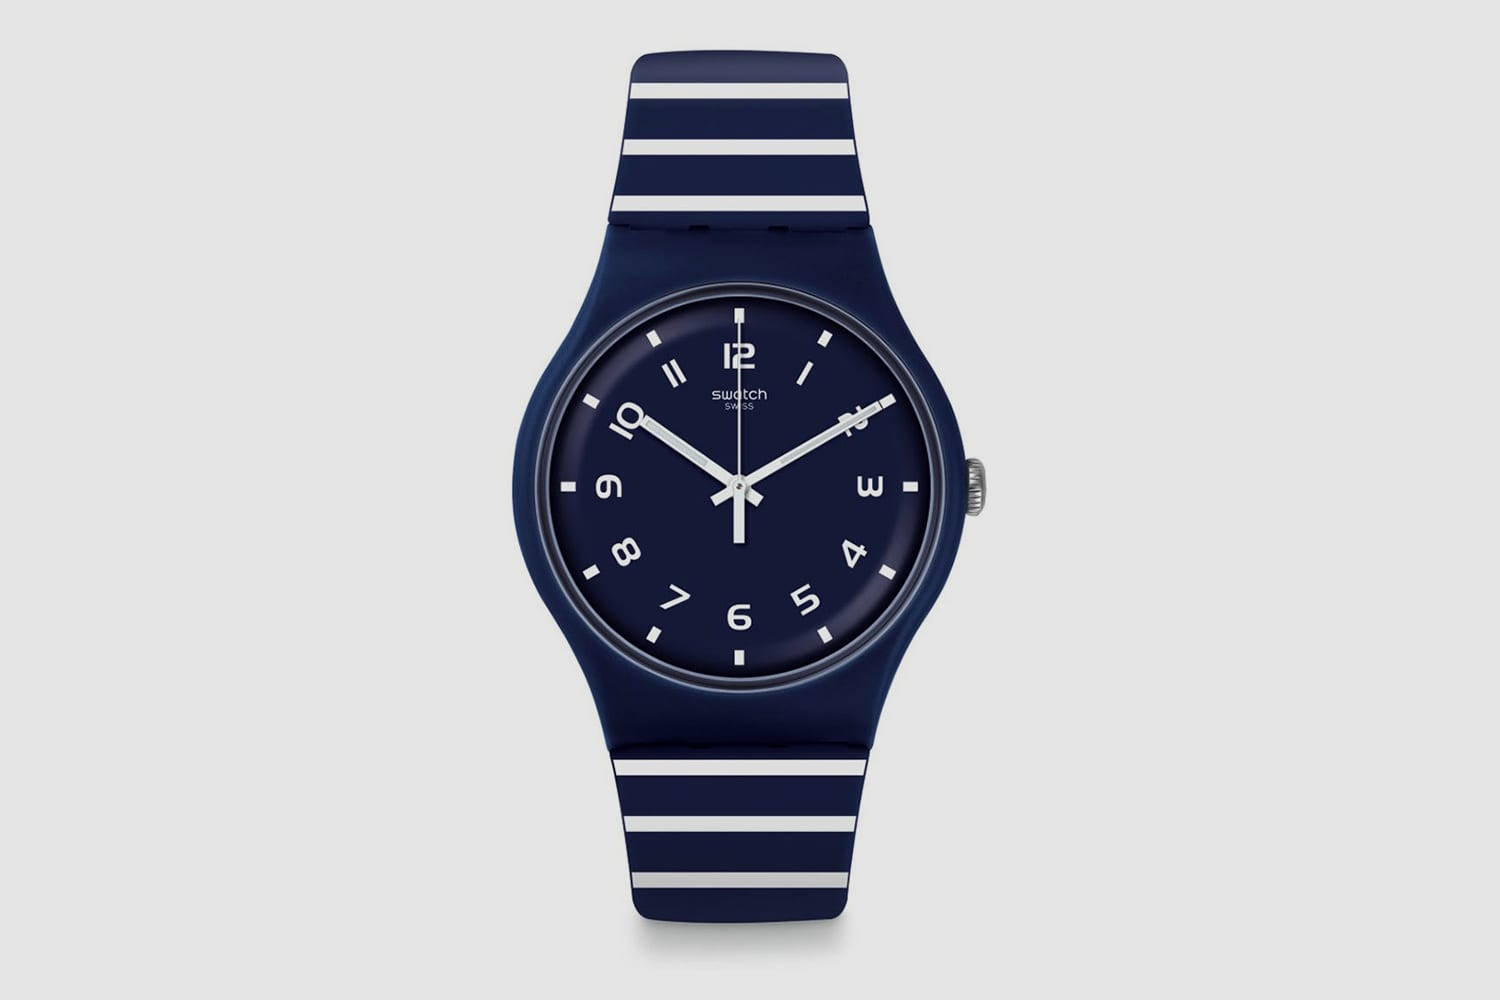 Swatch-Navy-Watch